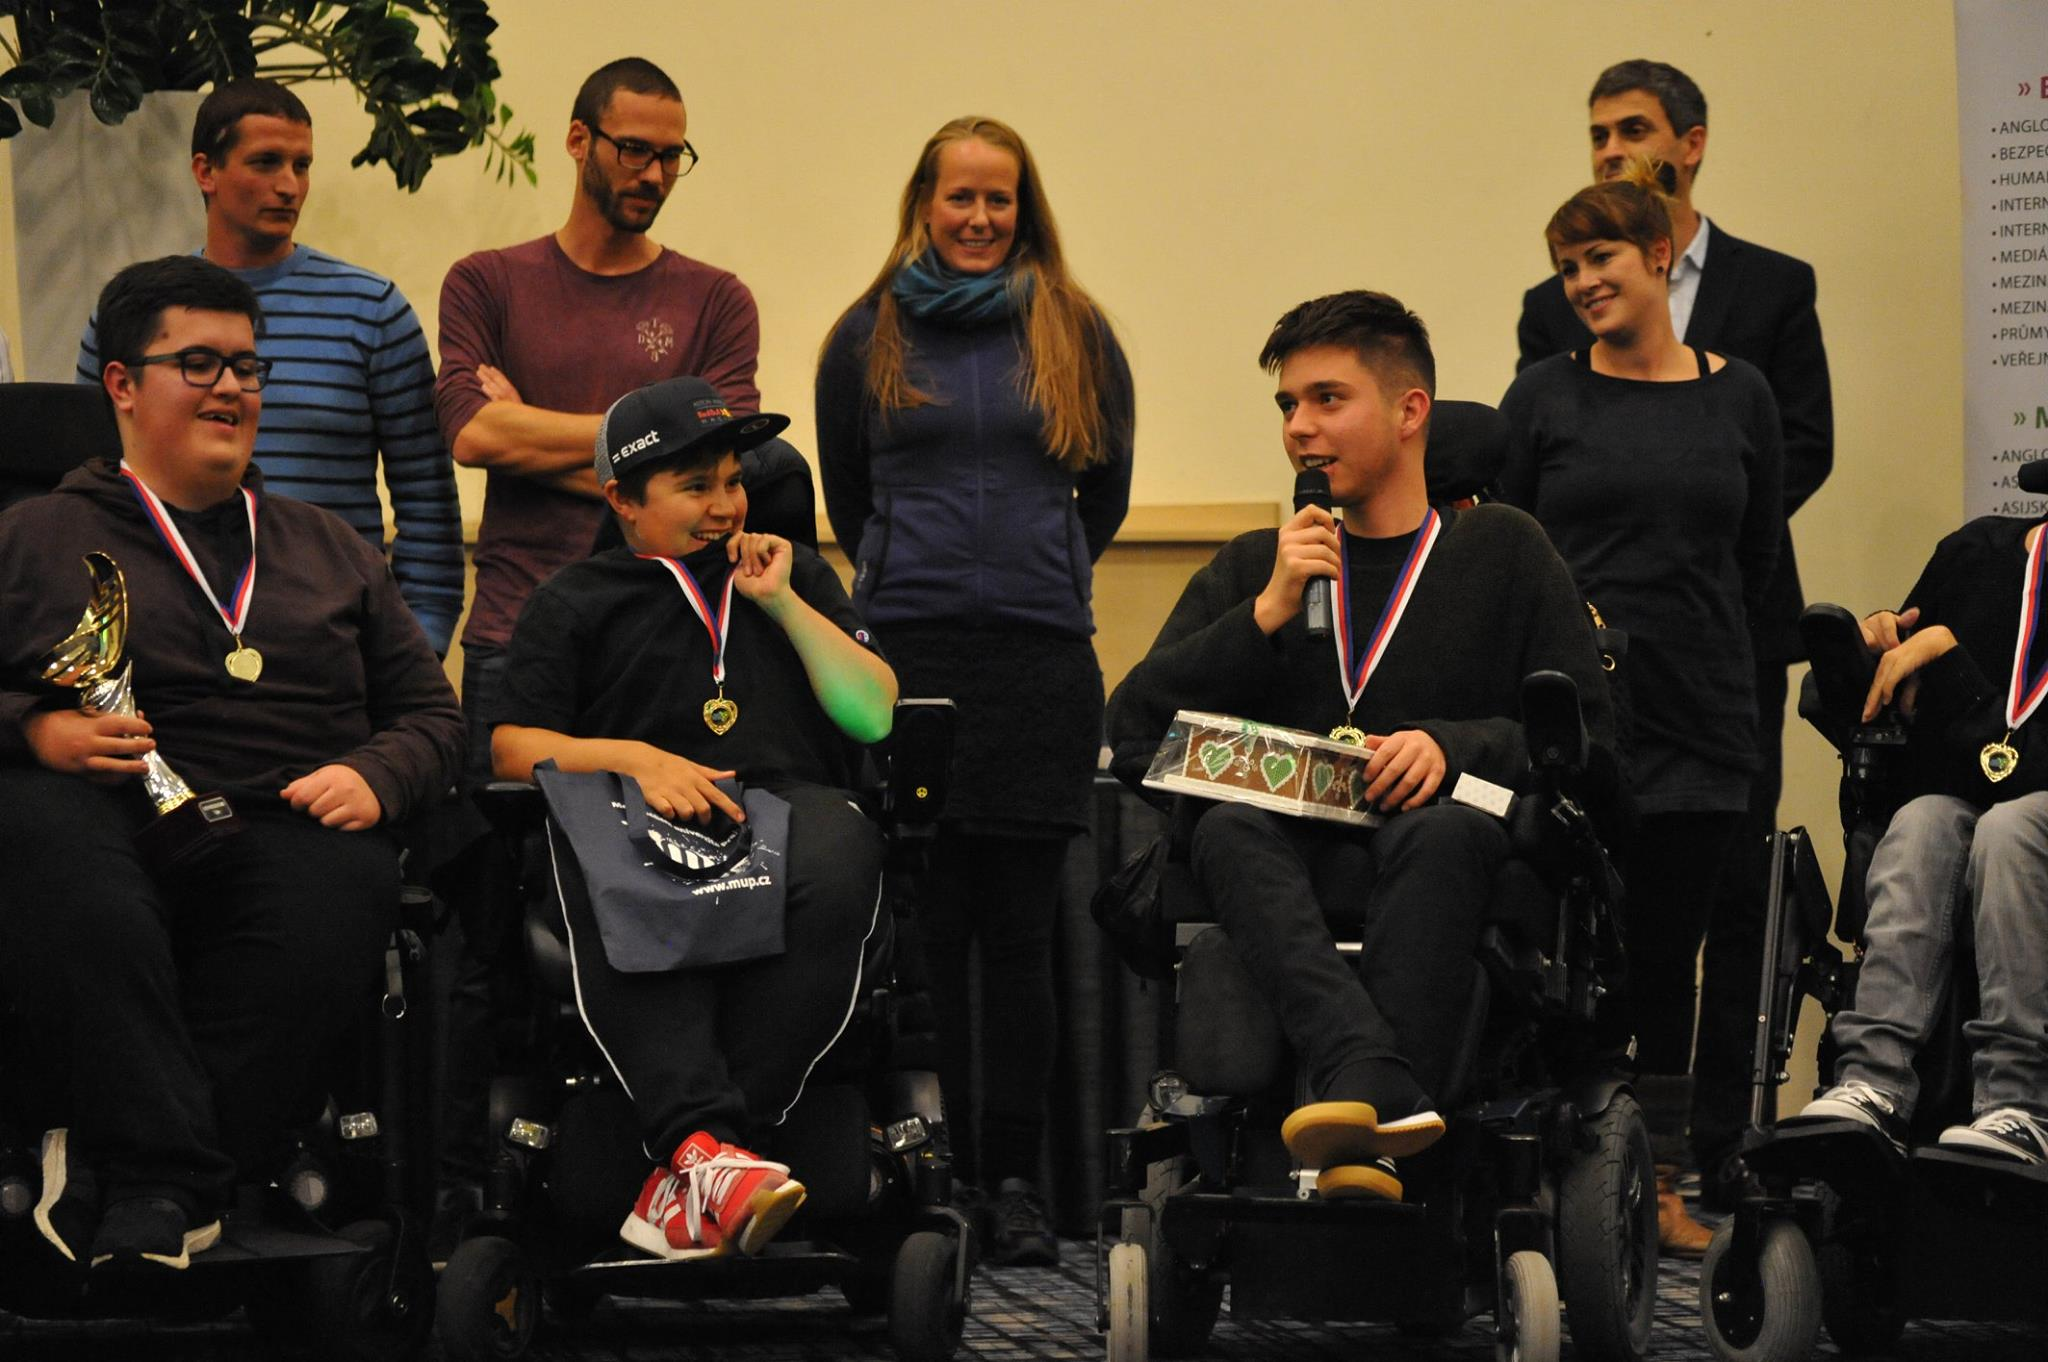 9. Prague Powerchair open ovládli Iron Cats ze Švýcarska